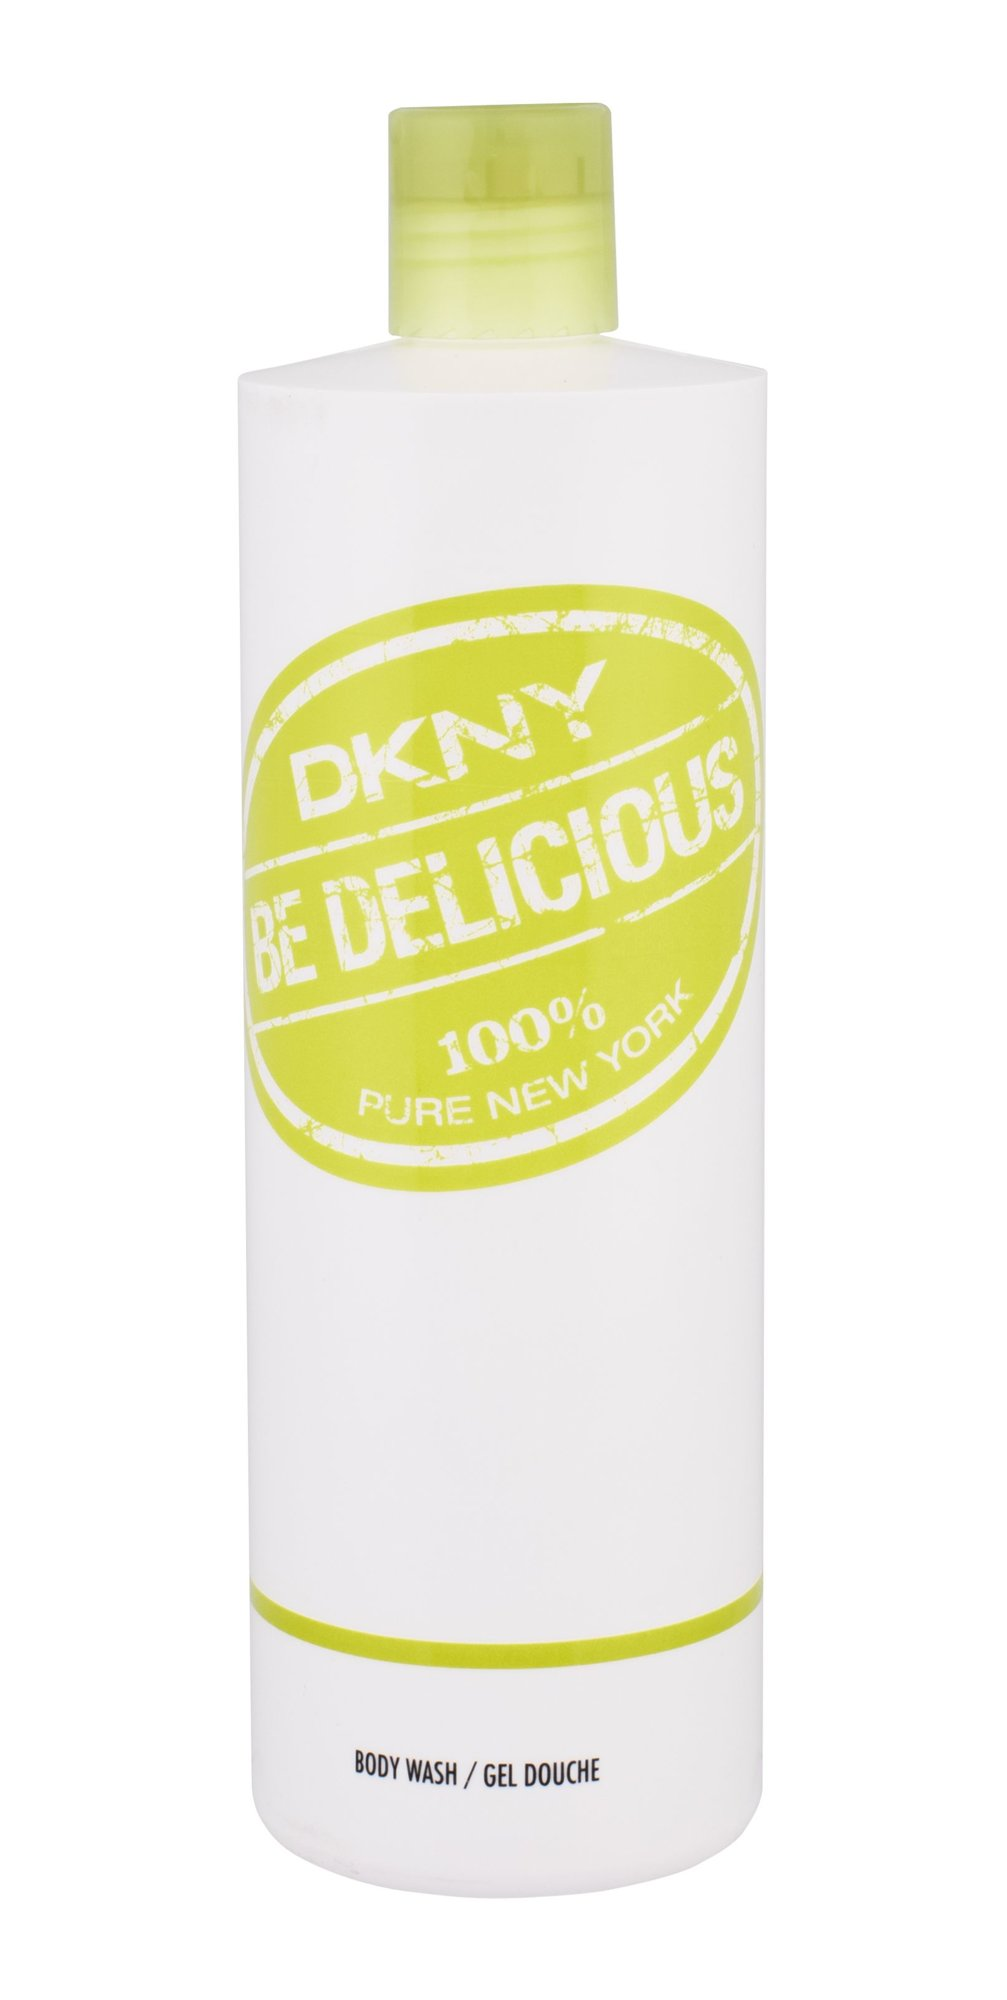 DKNY DKNY Be Delicious Shower gel 475ml